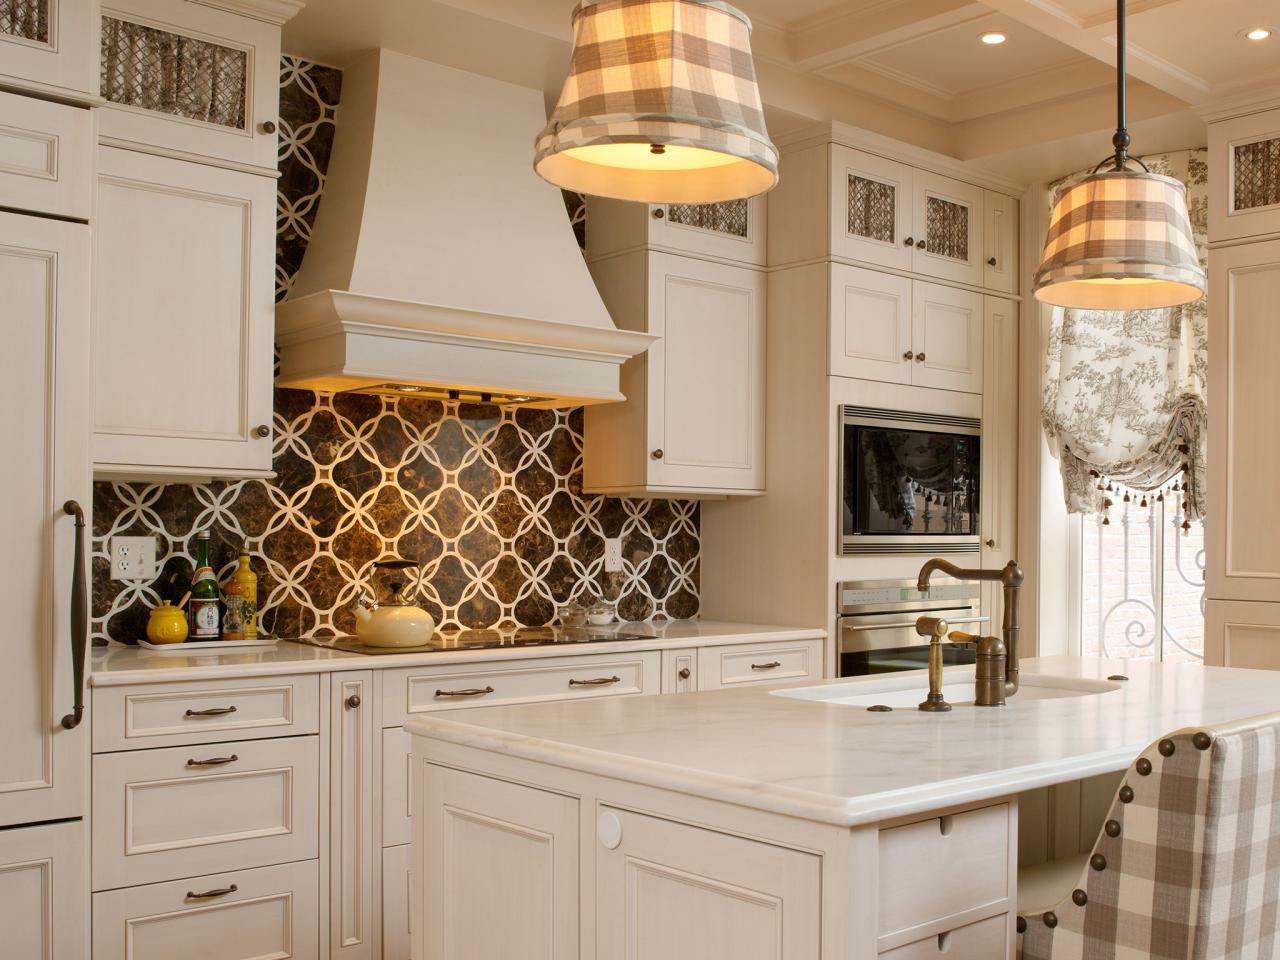 Kitchen Backsplash Design IdeasHGTV